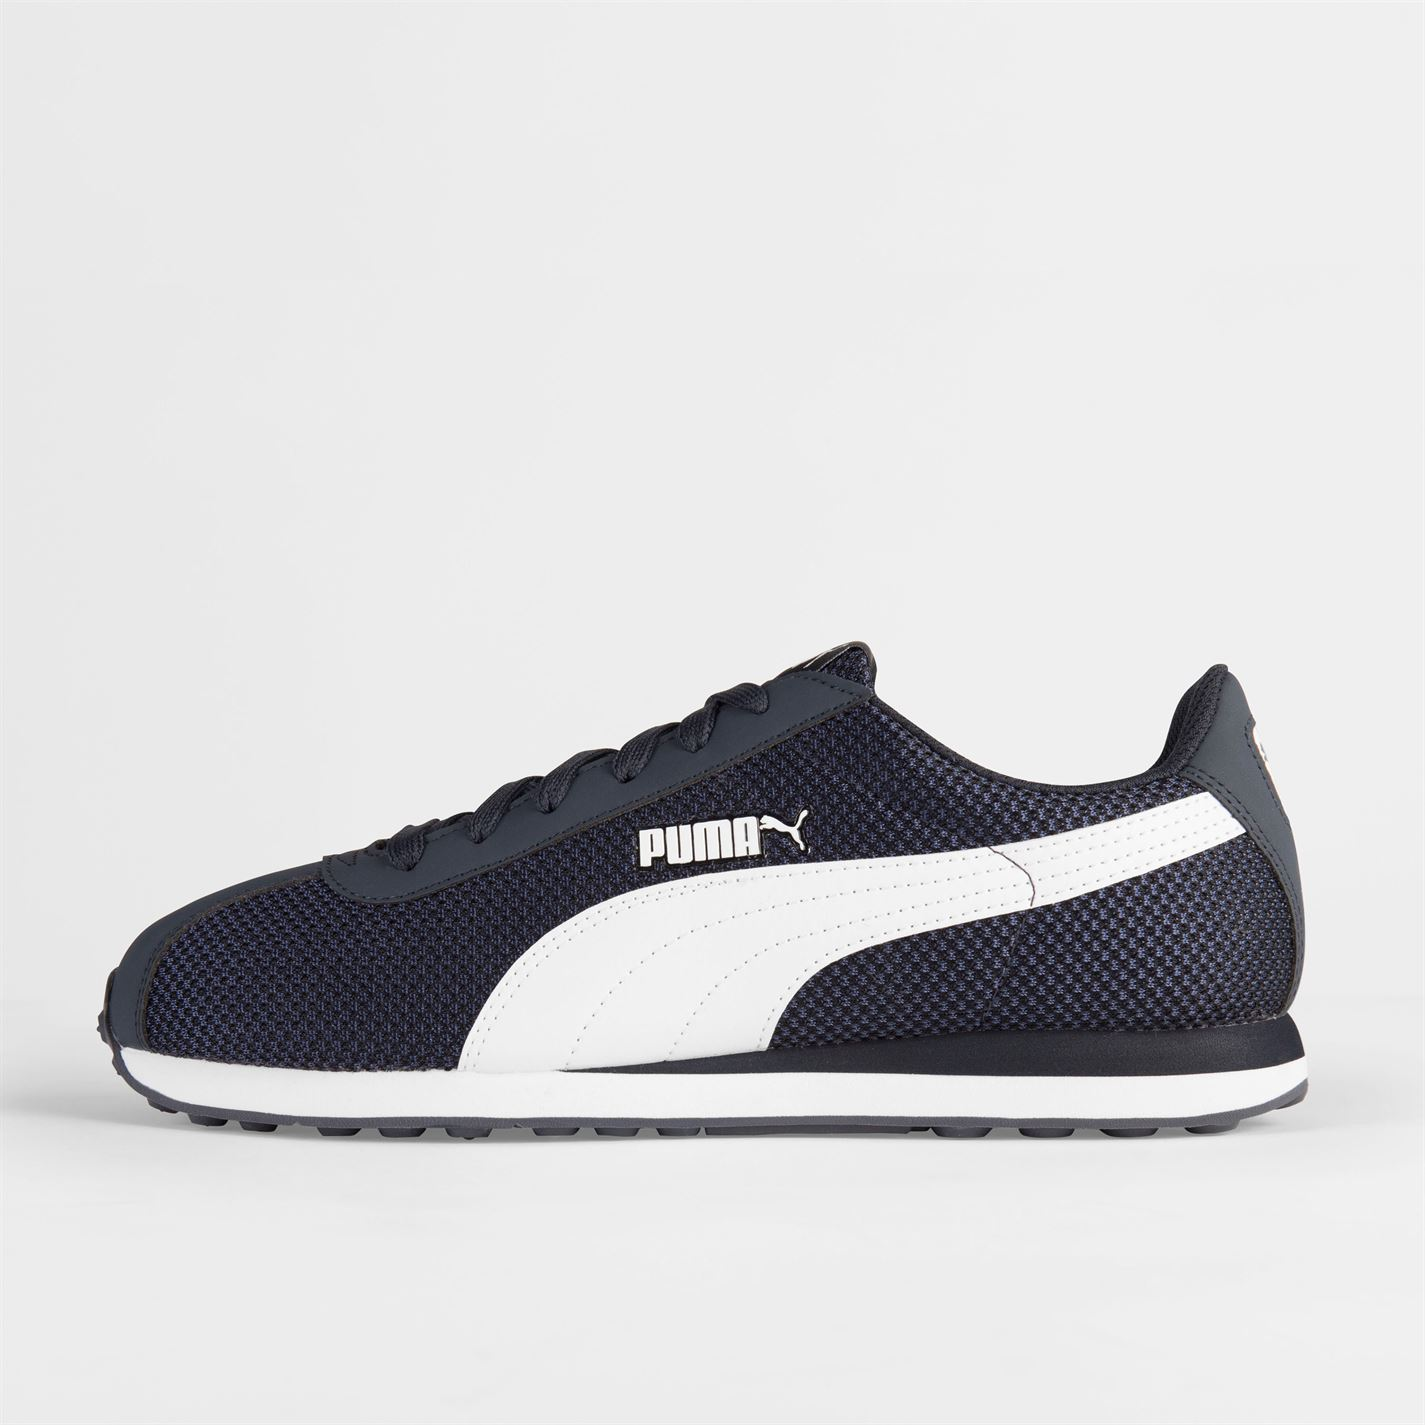 Puma-Mens-Gents-Turin-Mesh-Trainers-Shoes-Laces-Fastened-Footwear thumbnail 9